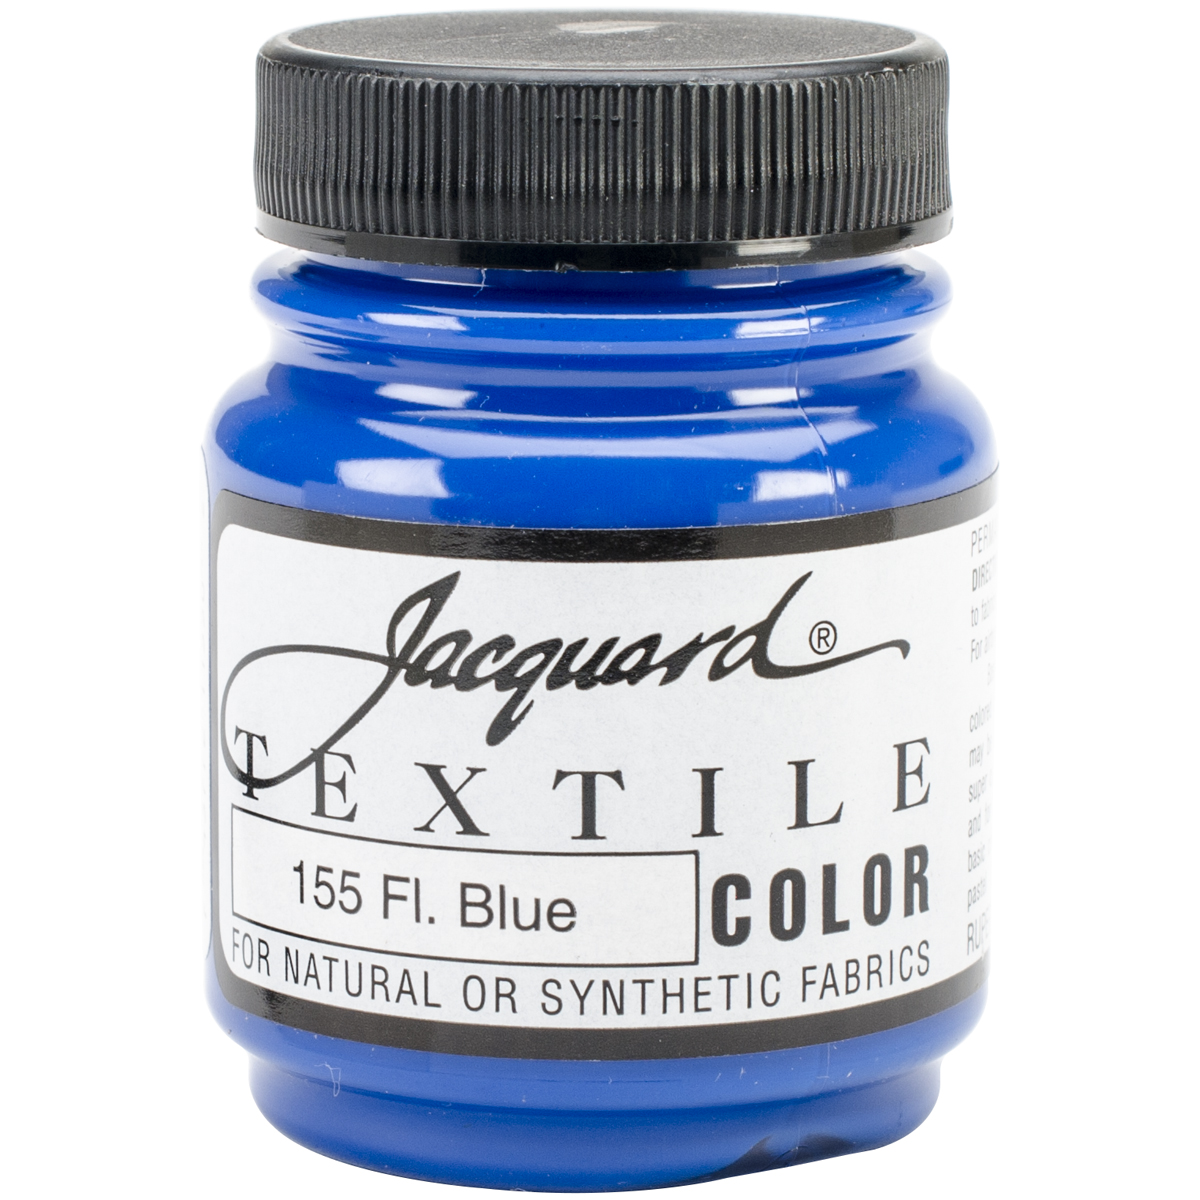 Jacquard Textile Color Fabric Paint 2.25Oz-Fluorescent Blue